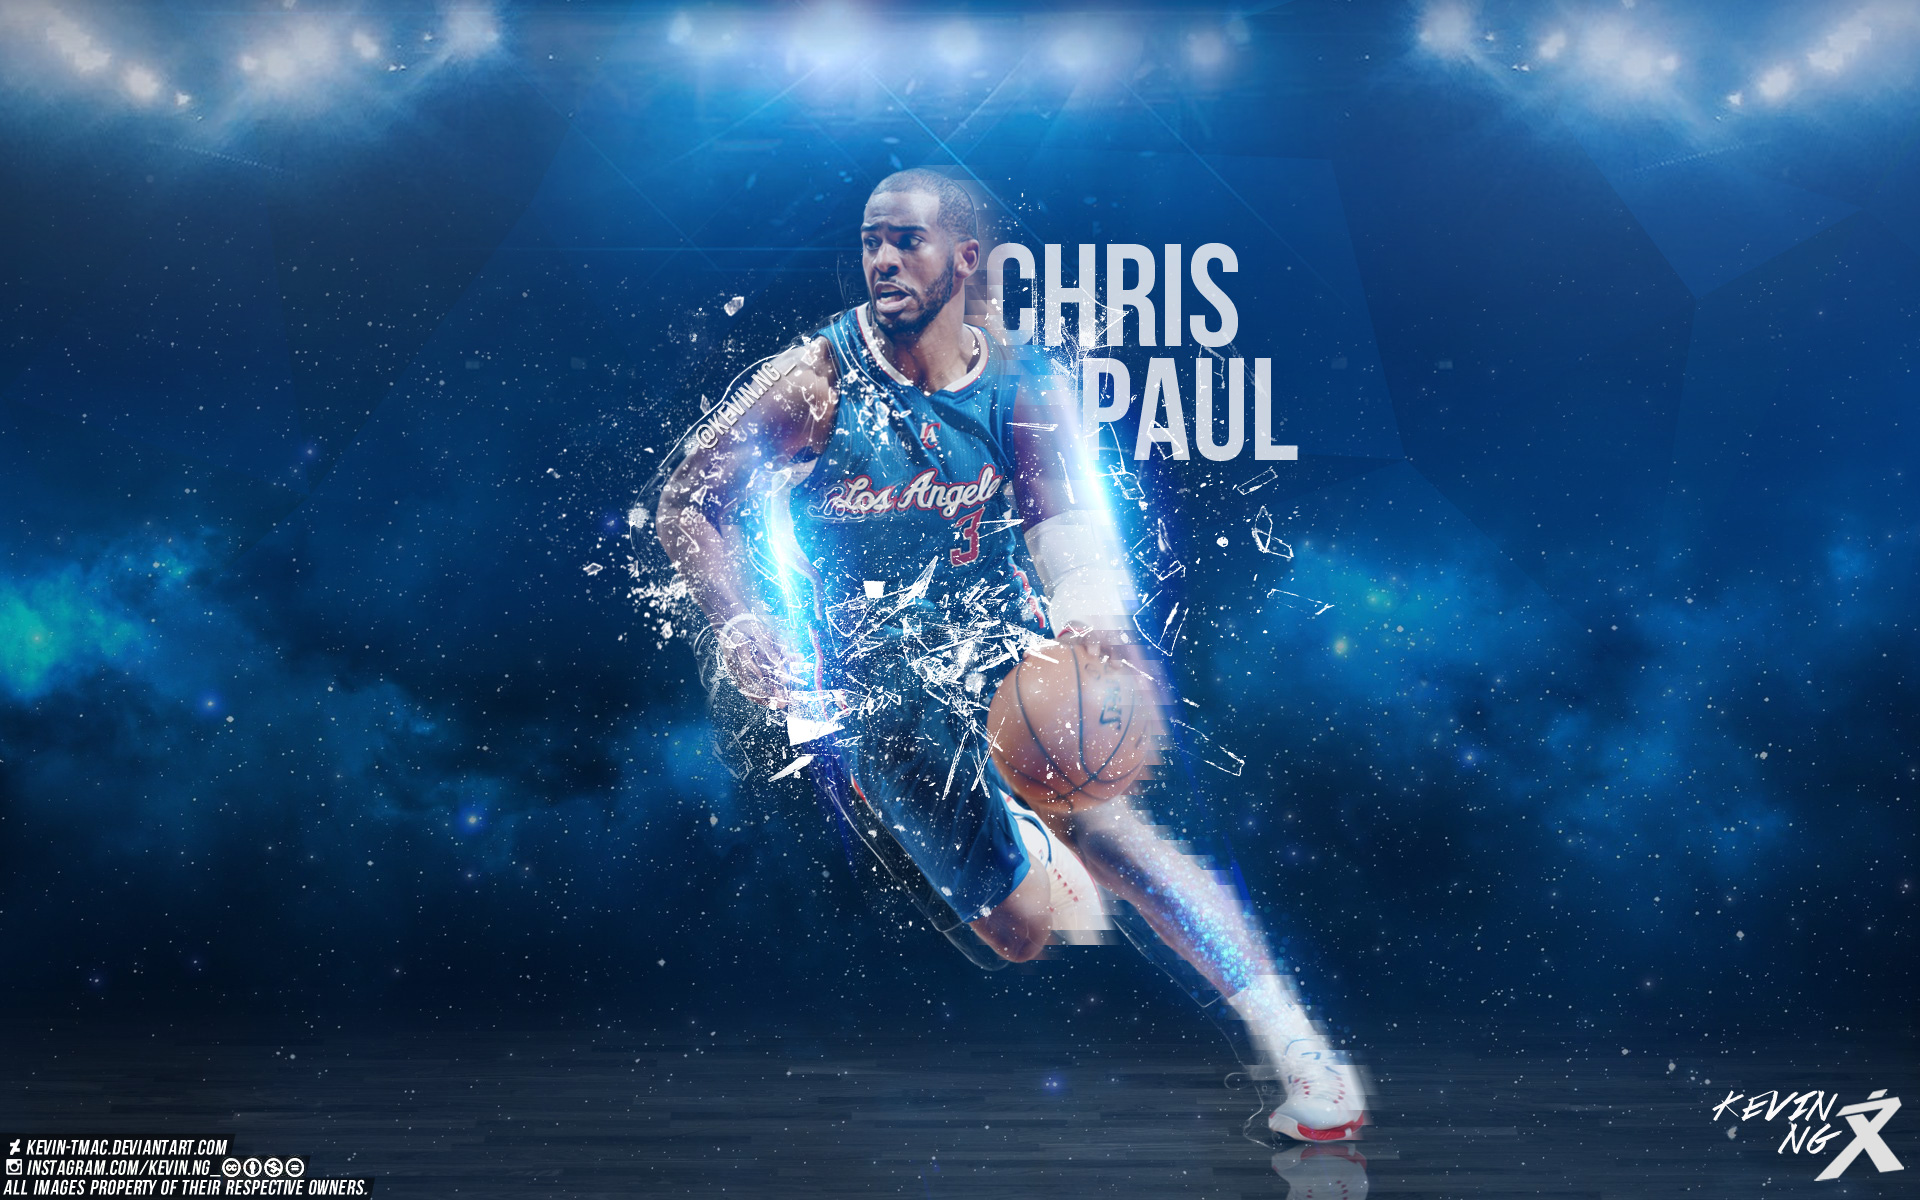 cp3 2015 nba playoffs wallpaper basketball wallpapers at